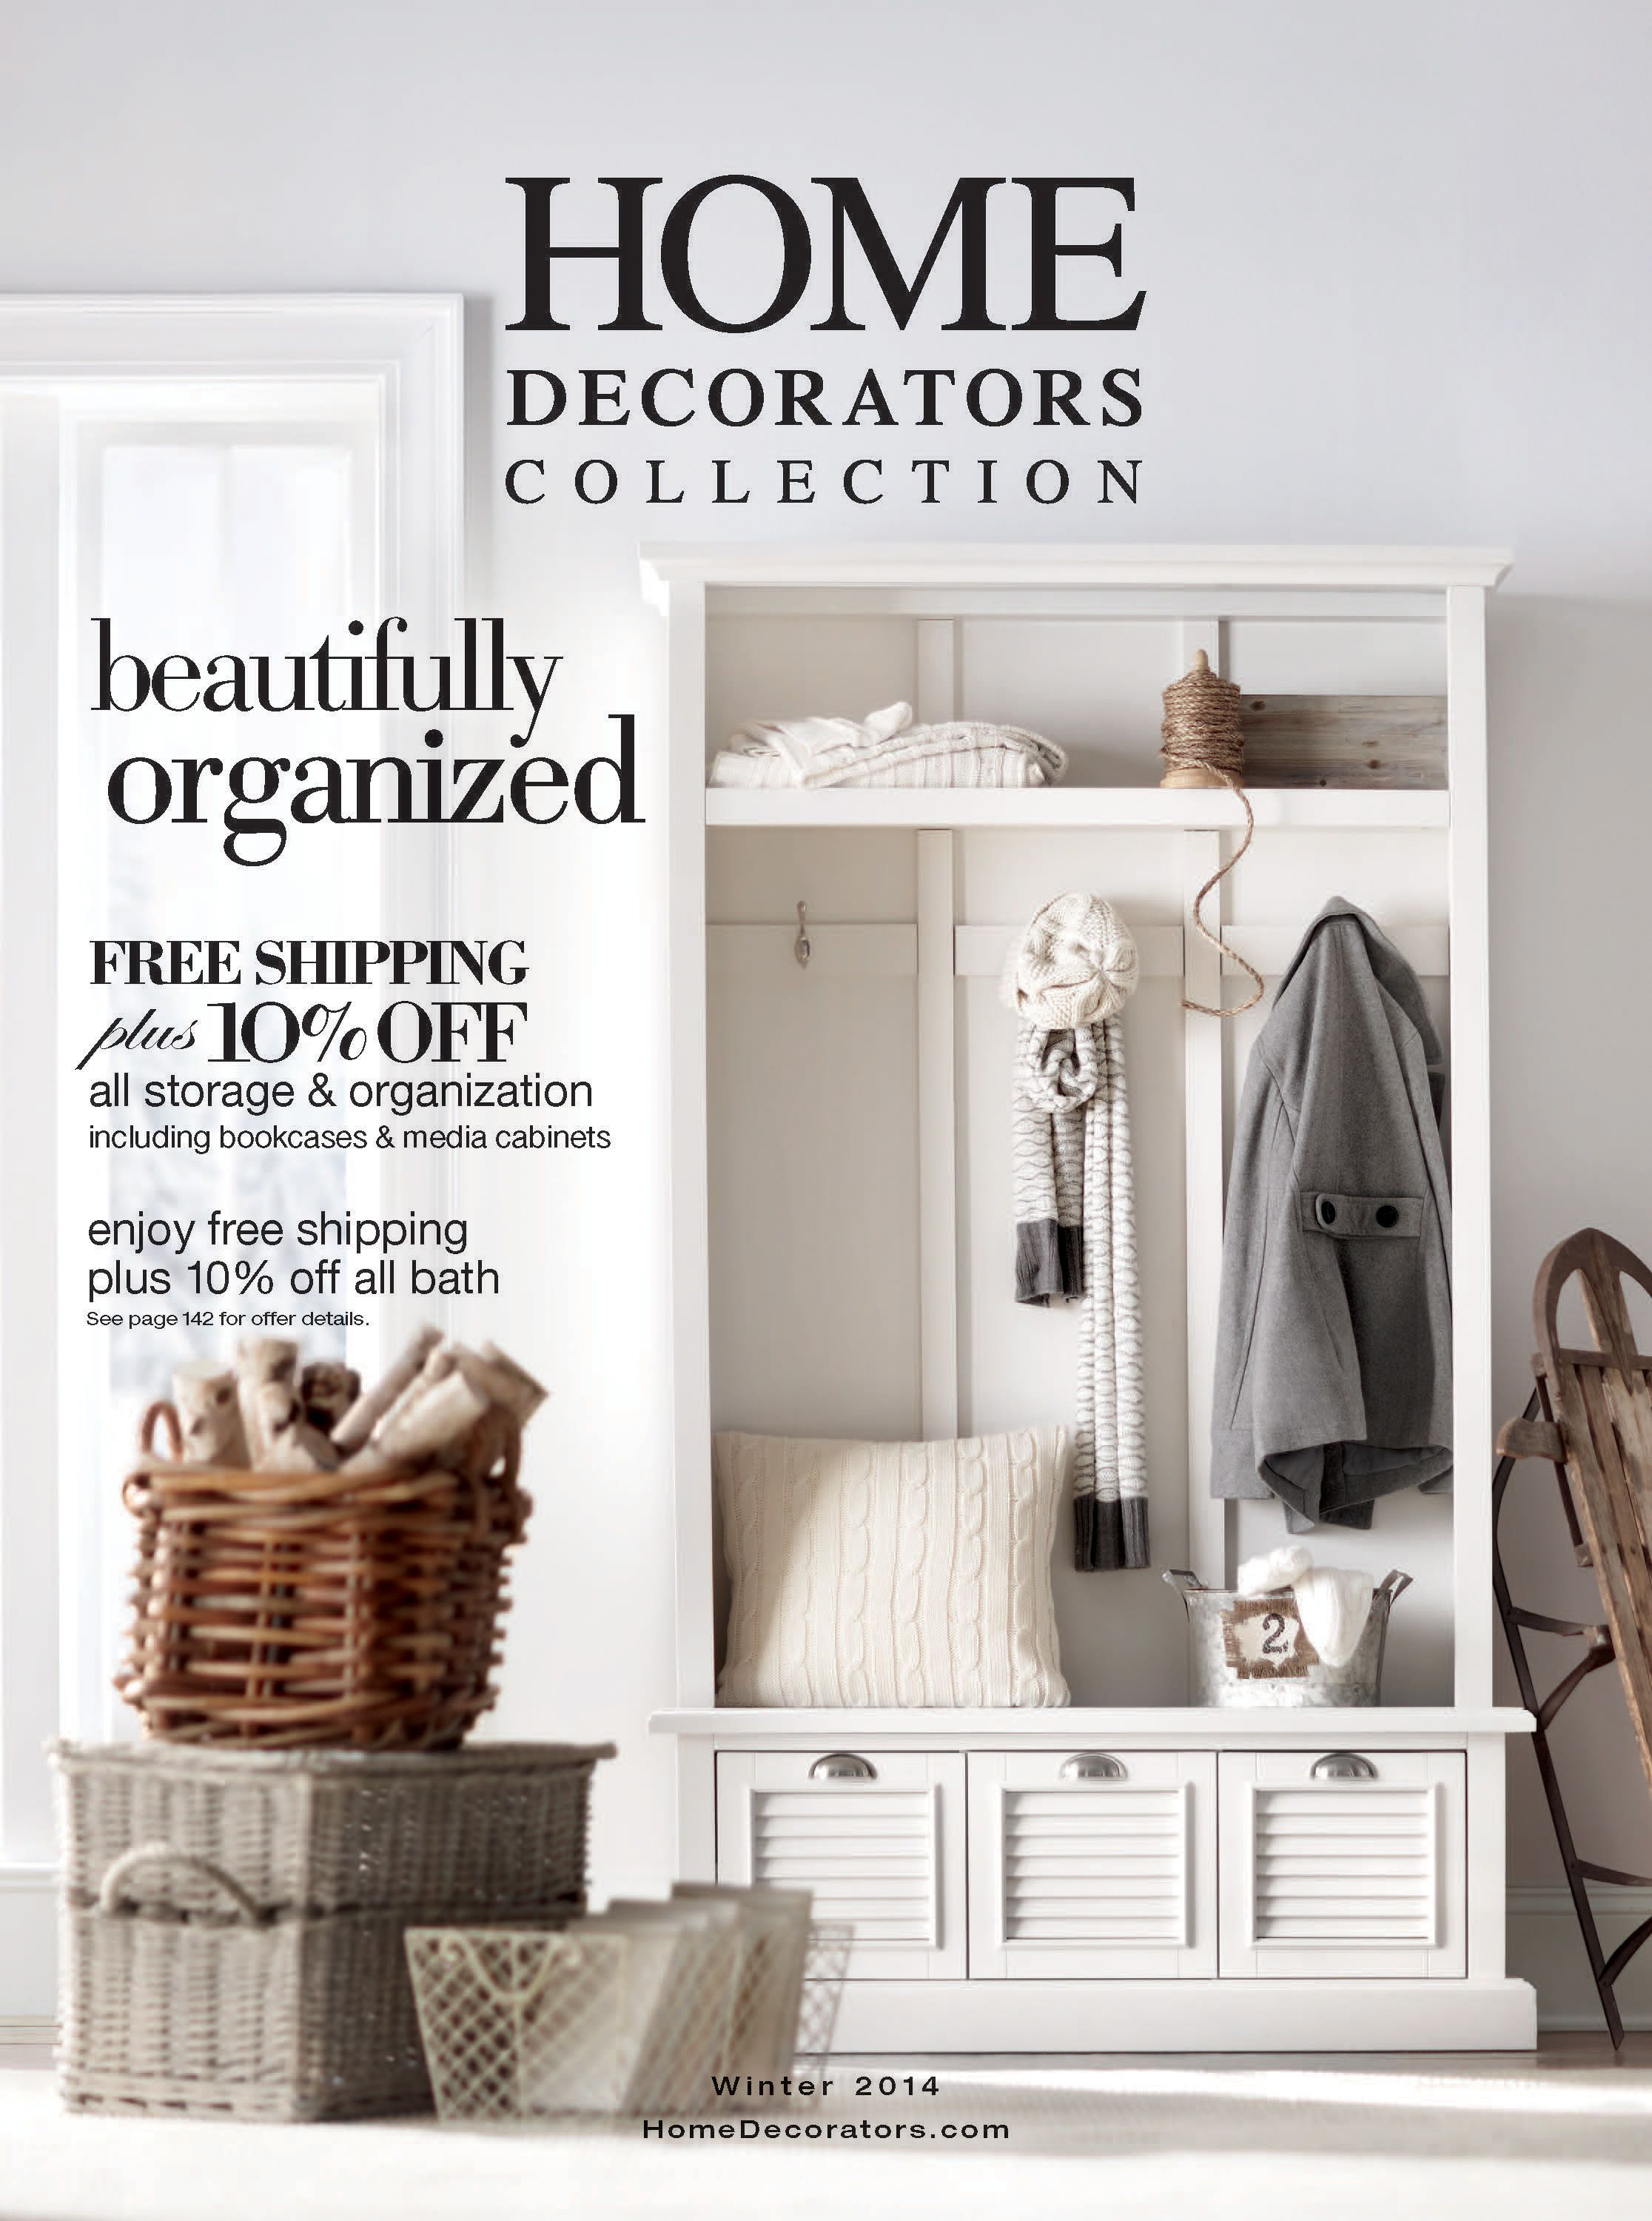 Home Decorators Collection Catalog Order Here Homedecorators Requestphp